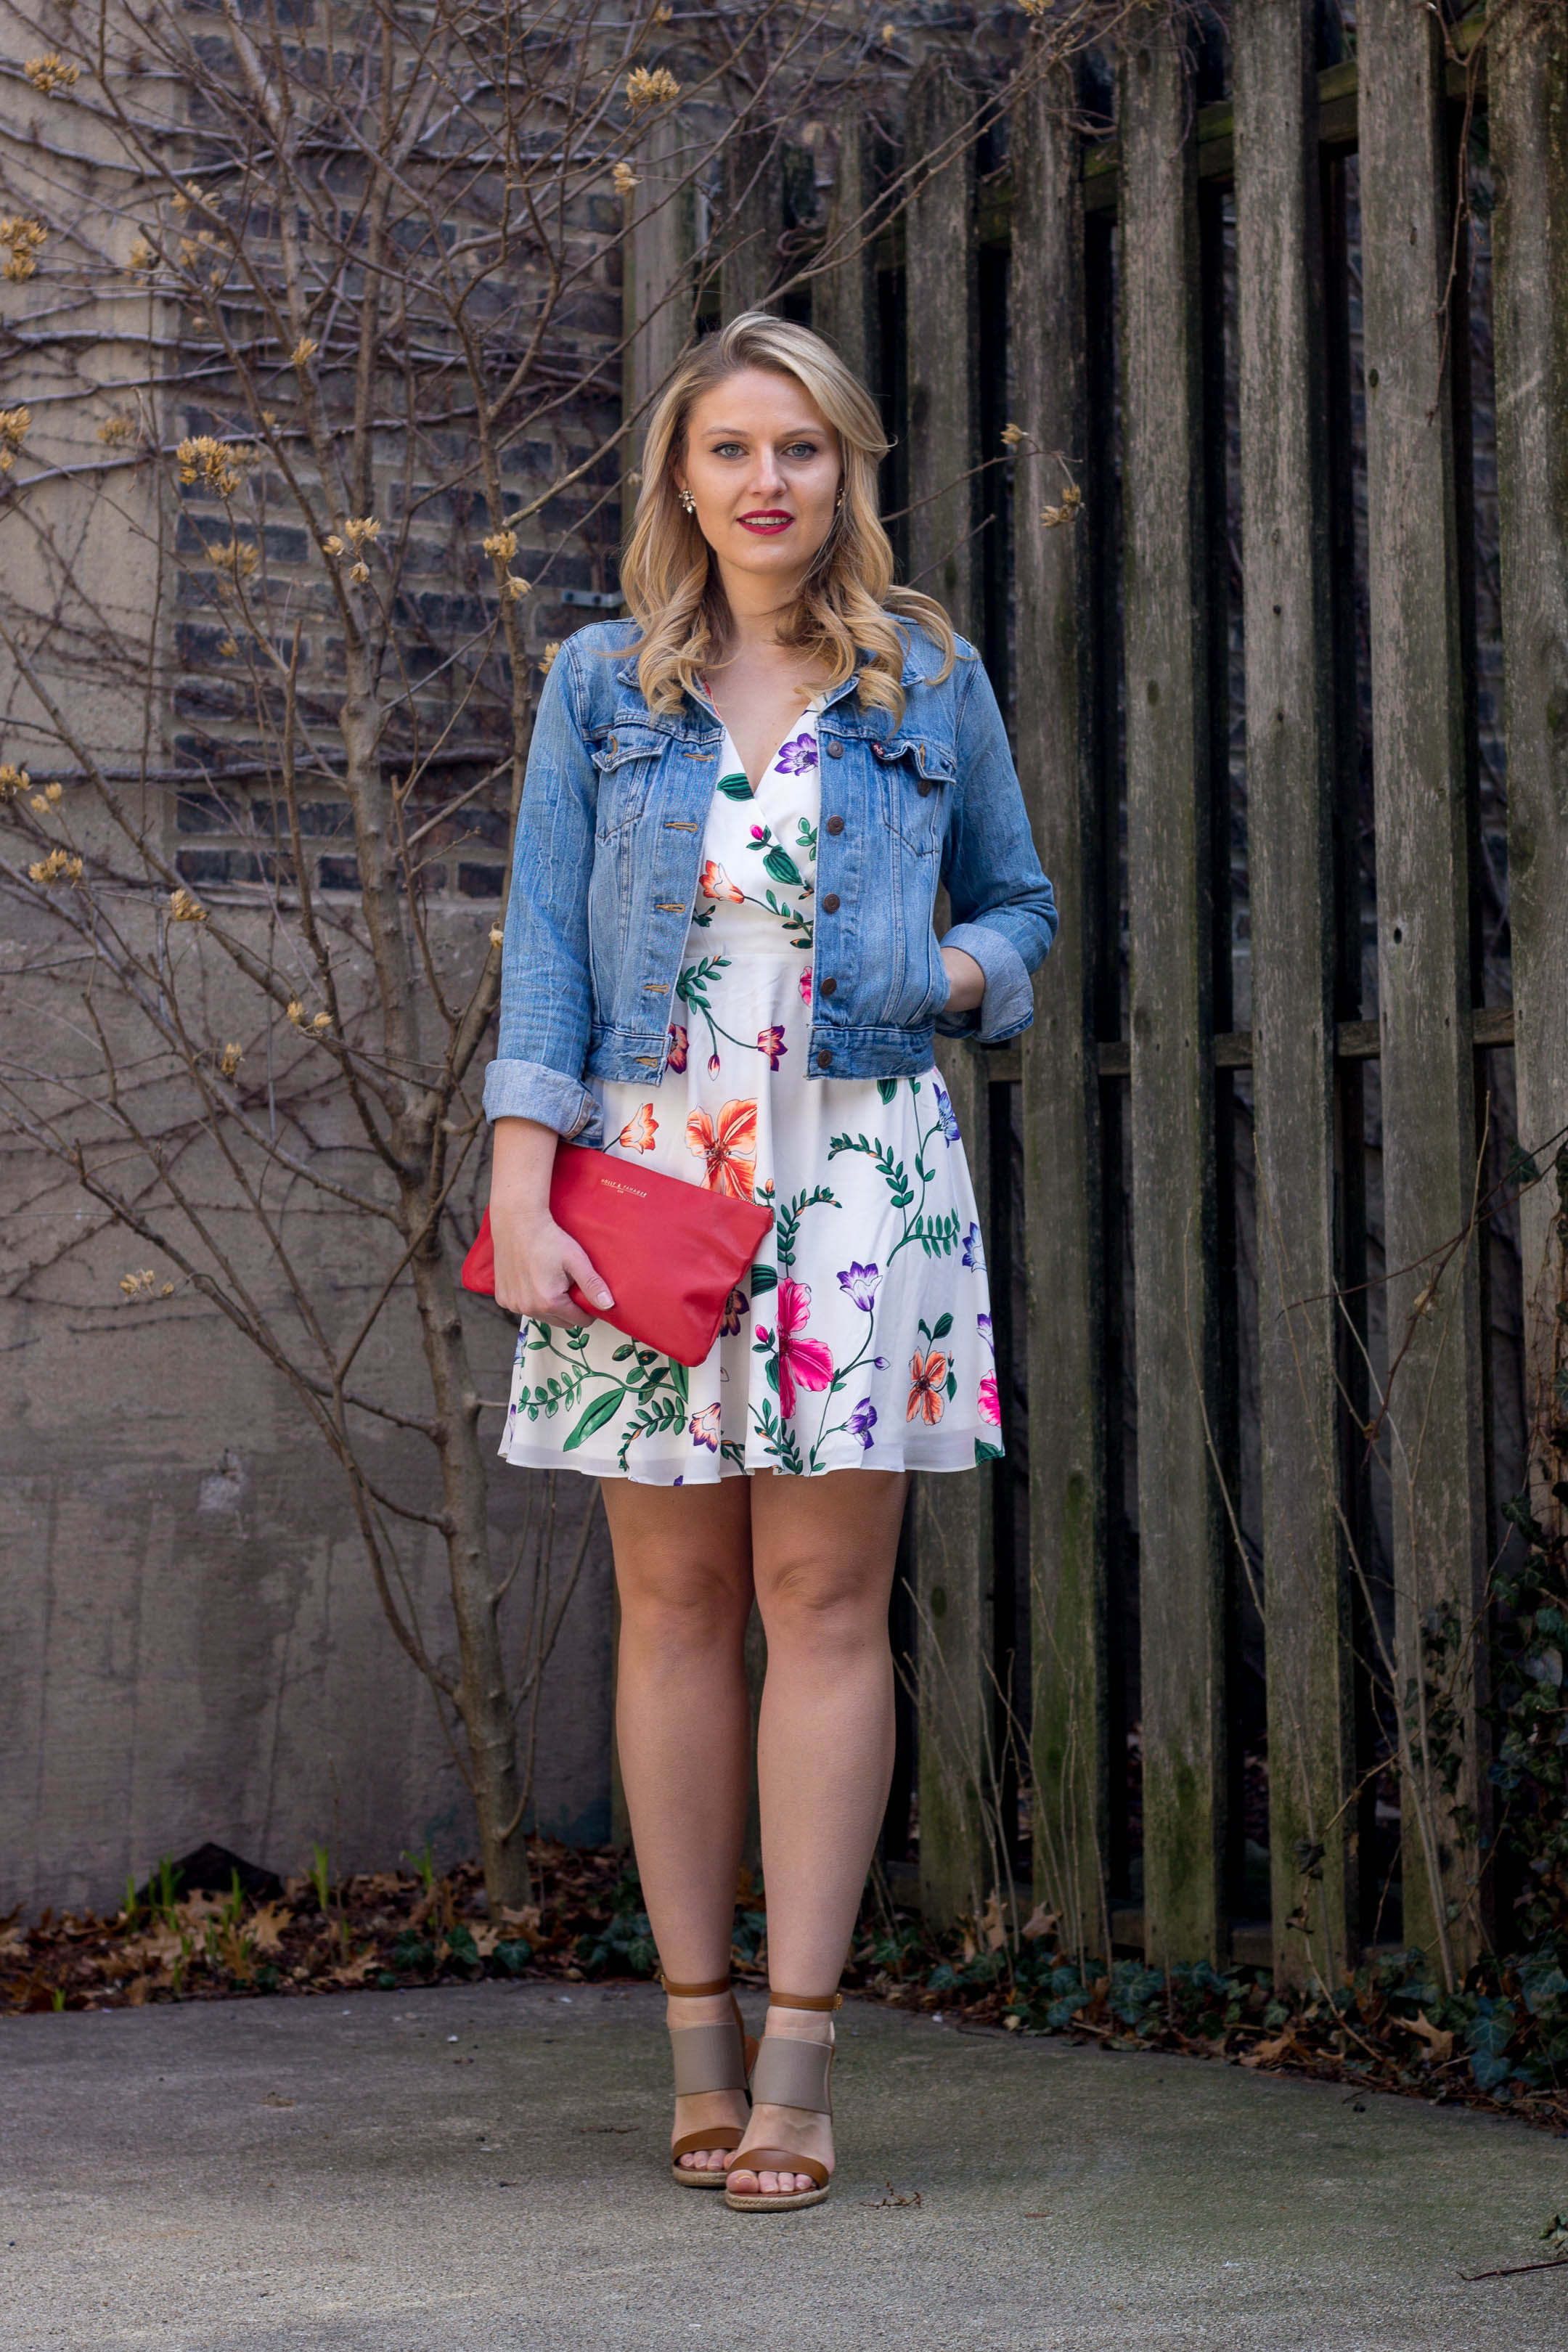 A simple vacation outfit featuring a floral dress and jean jacket